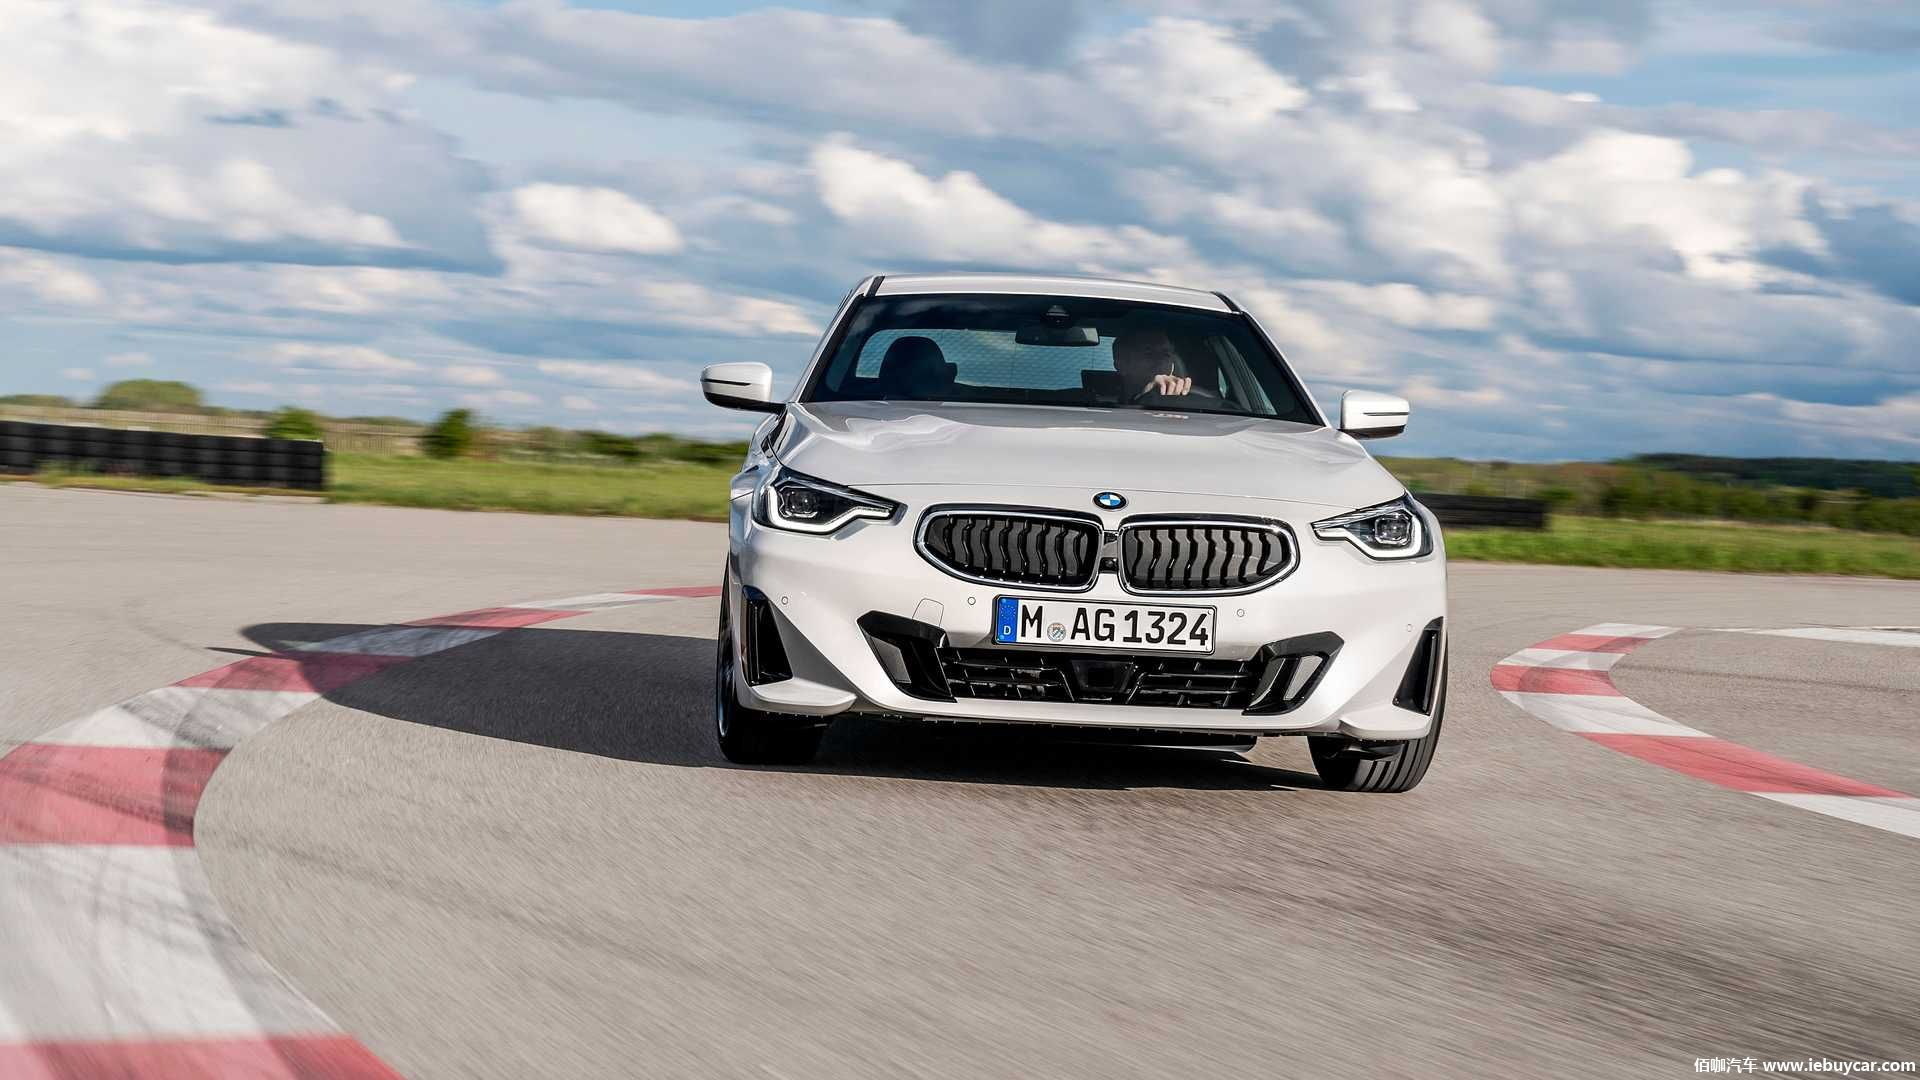 2022-bmw-230i-exterior-front-view.jpg